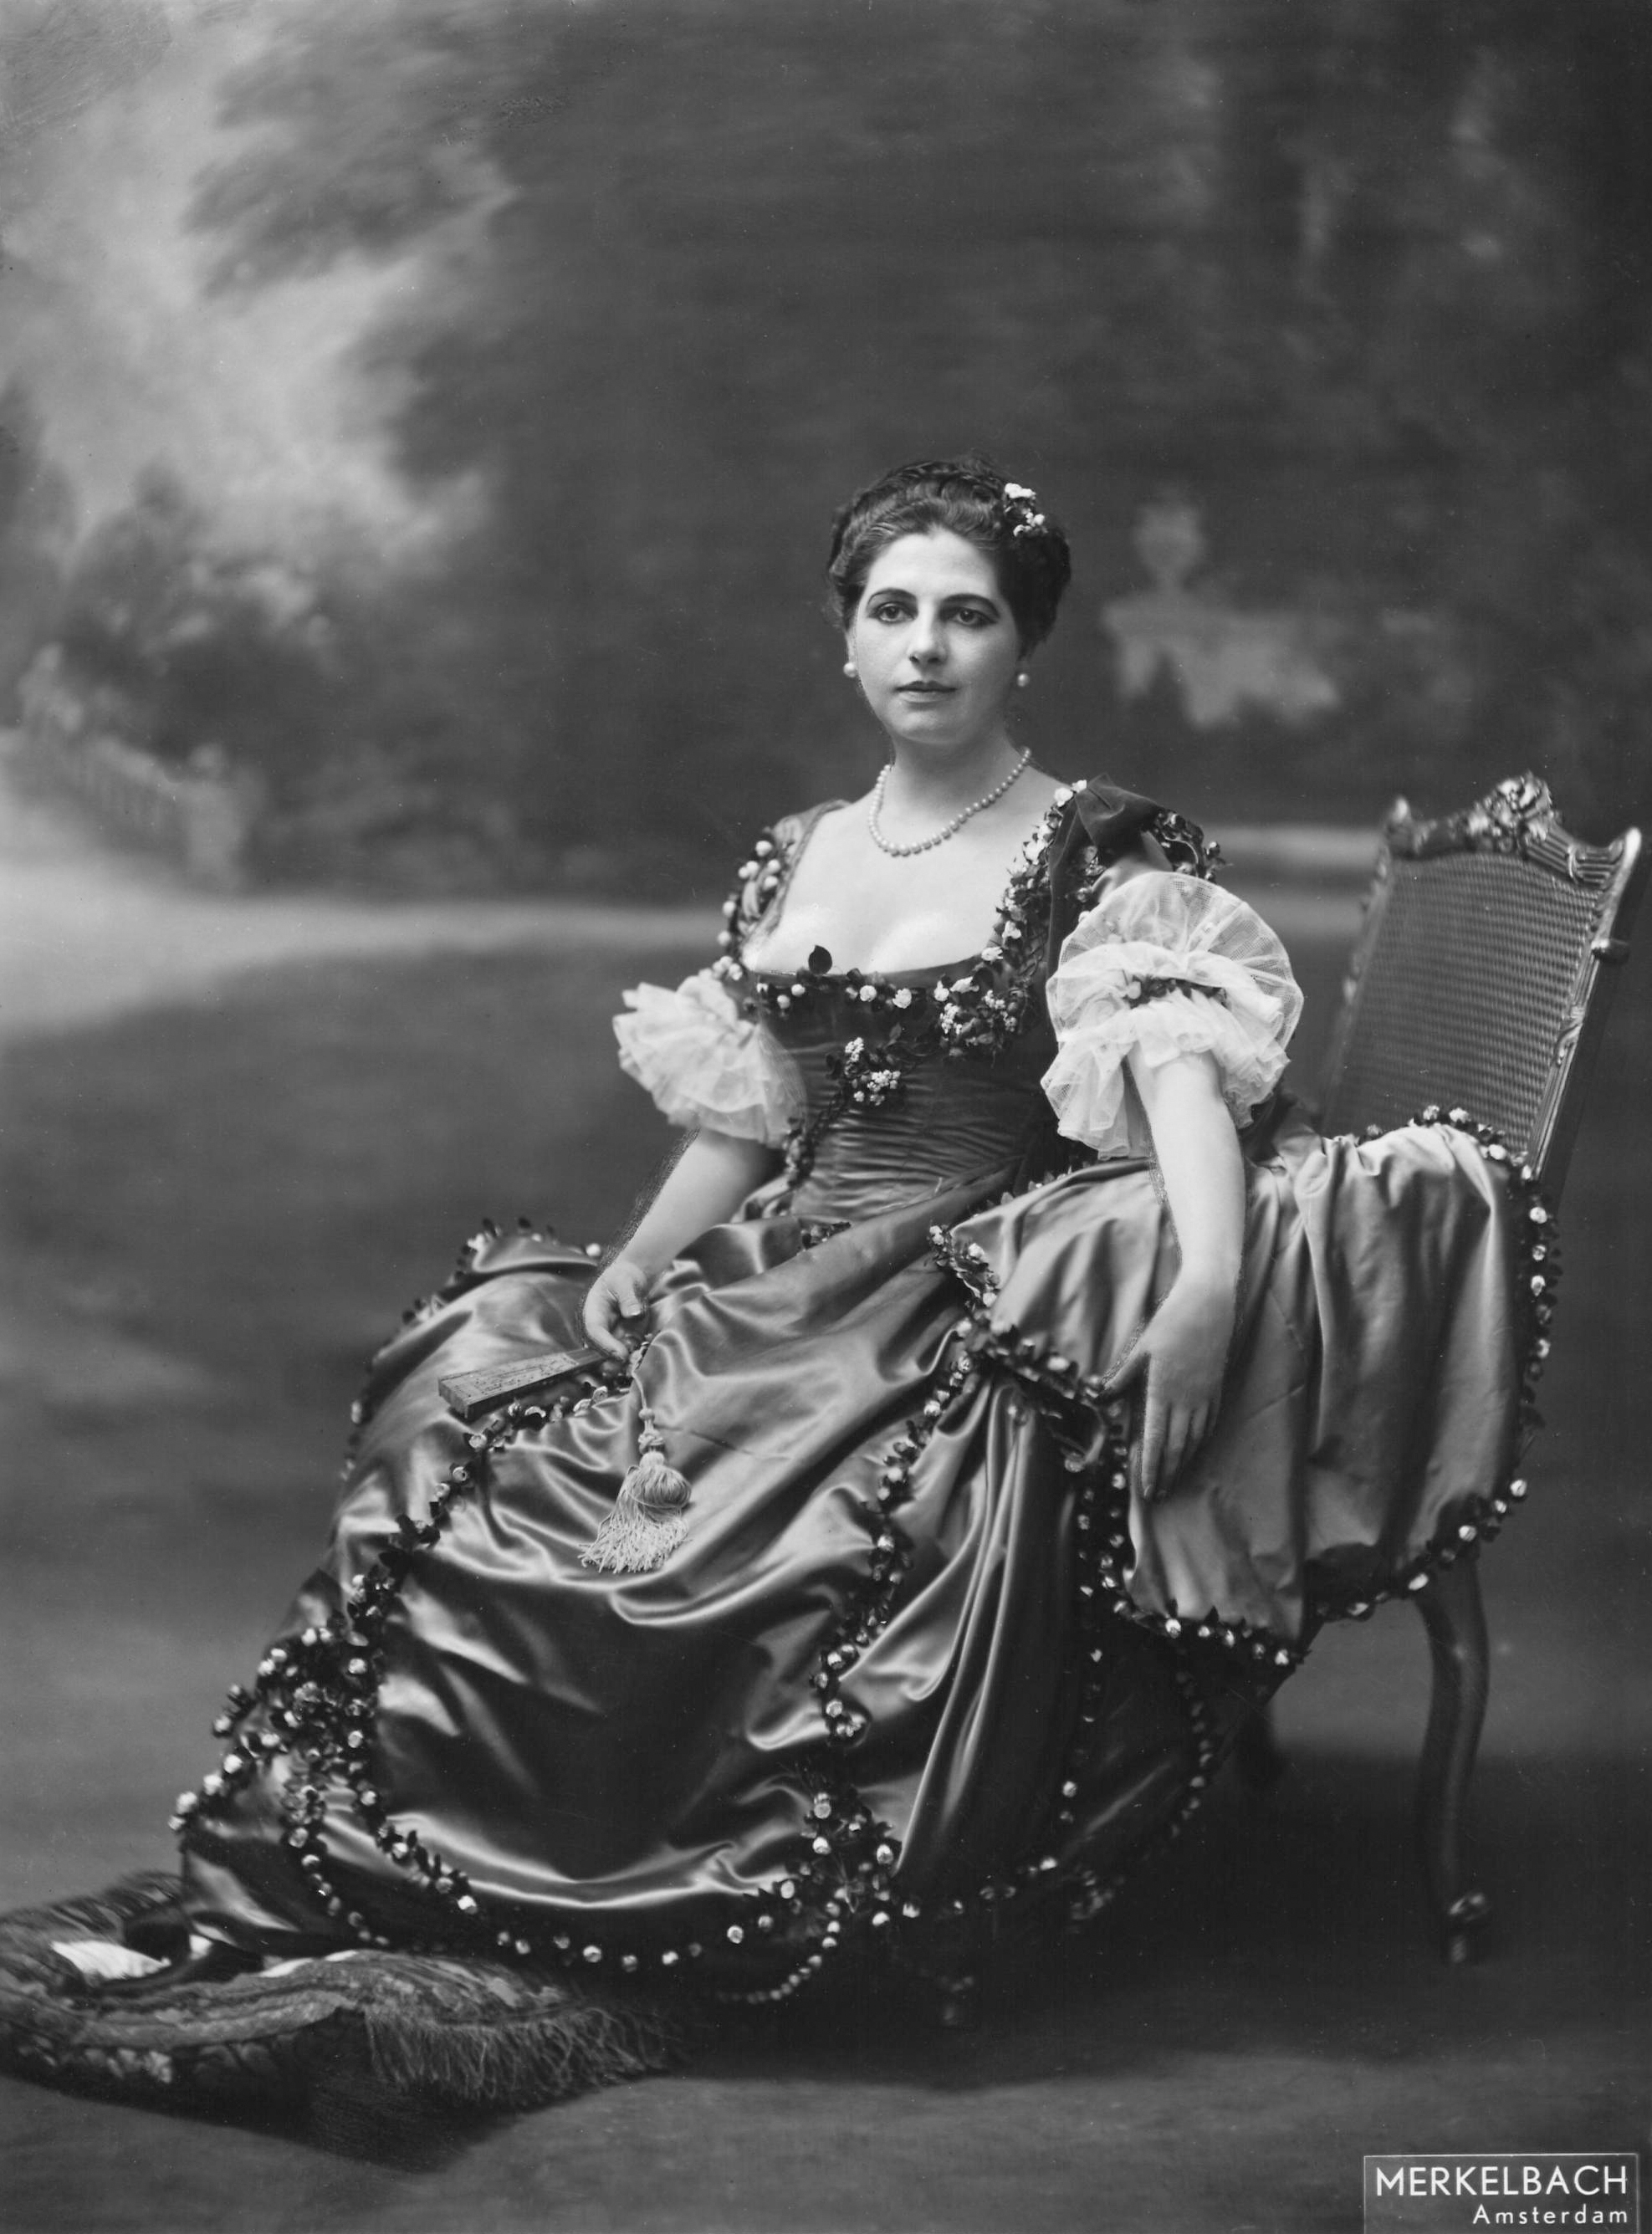 mata hari Mata hari was an exotic dancer and courtesan, killed by the french for espionage during wwi who was she was she really a spy.